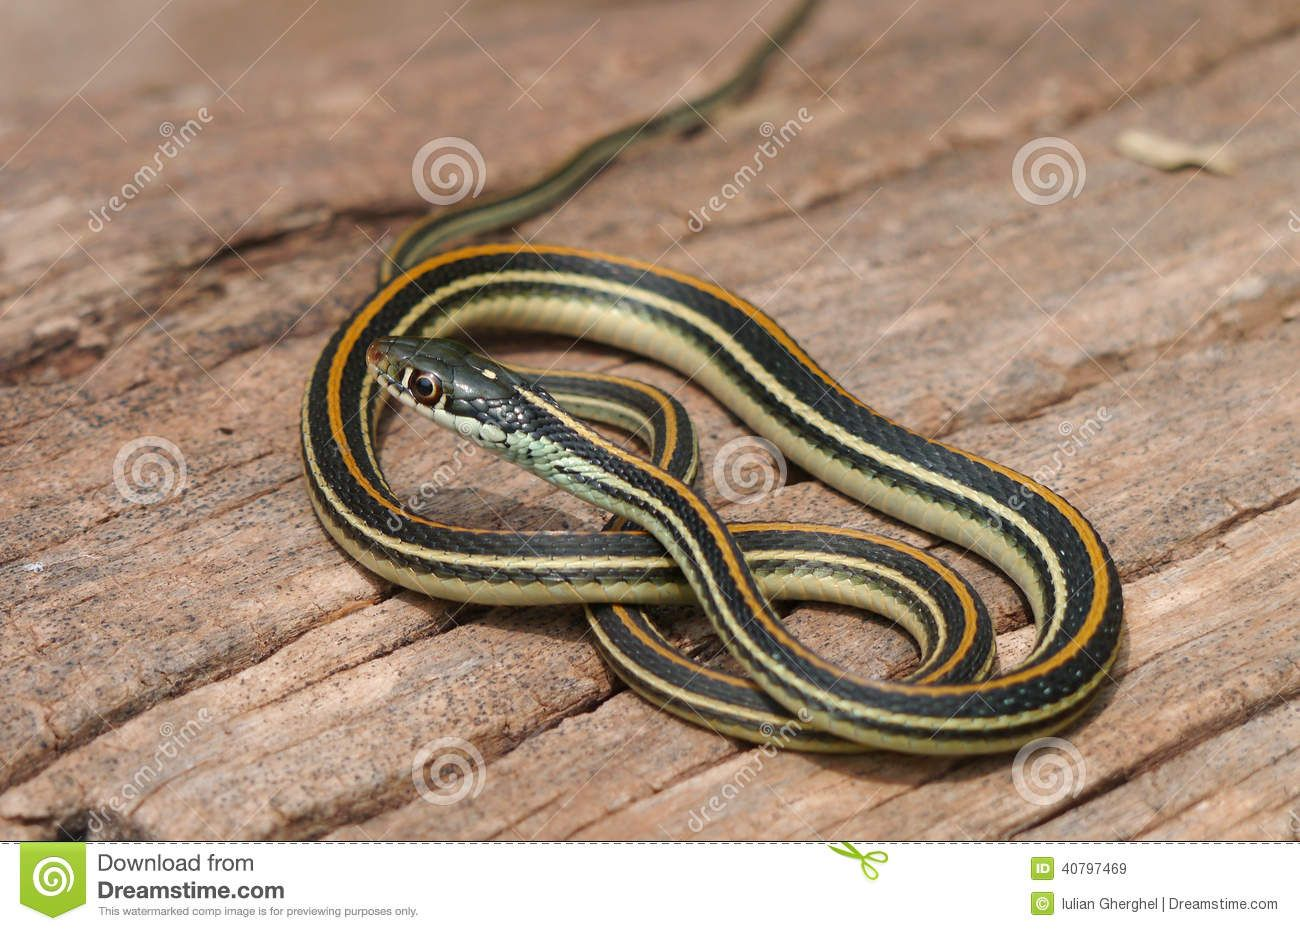 Pin by Claire Taylor on garter snake | Pinterest